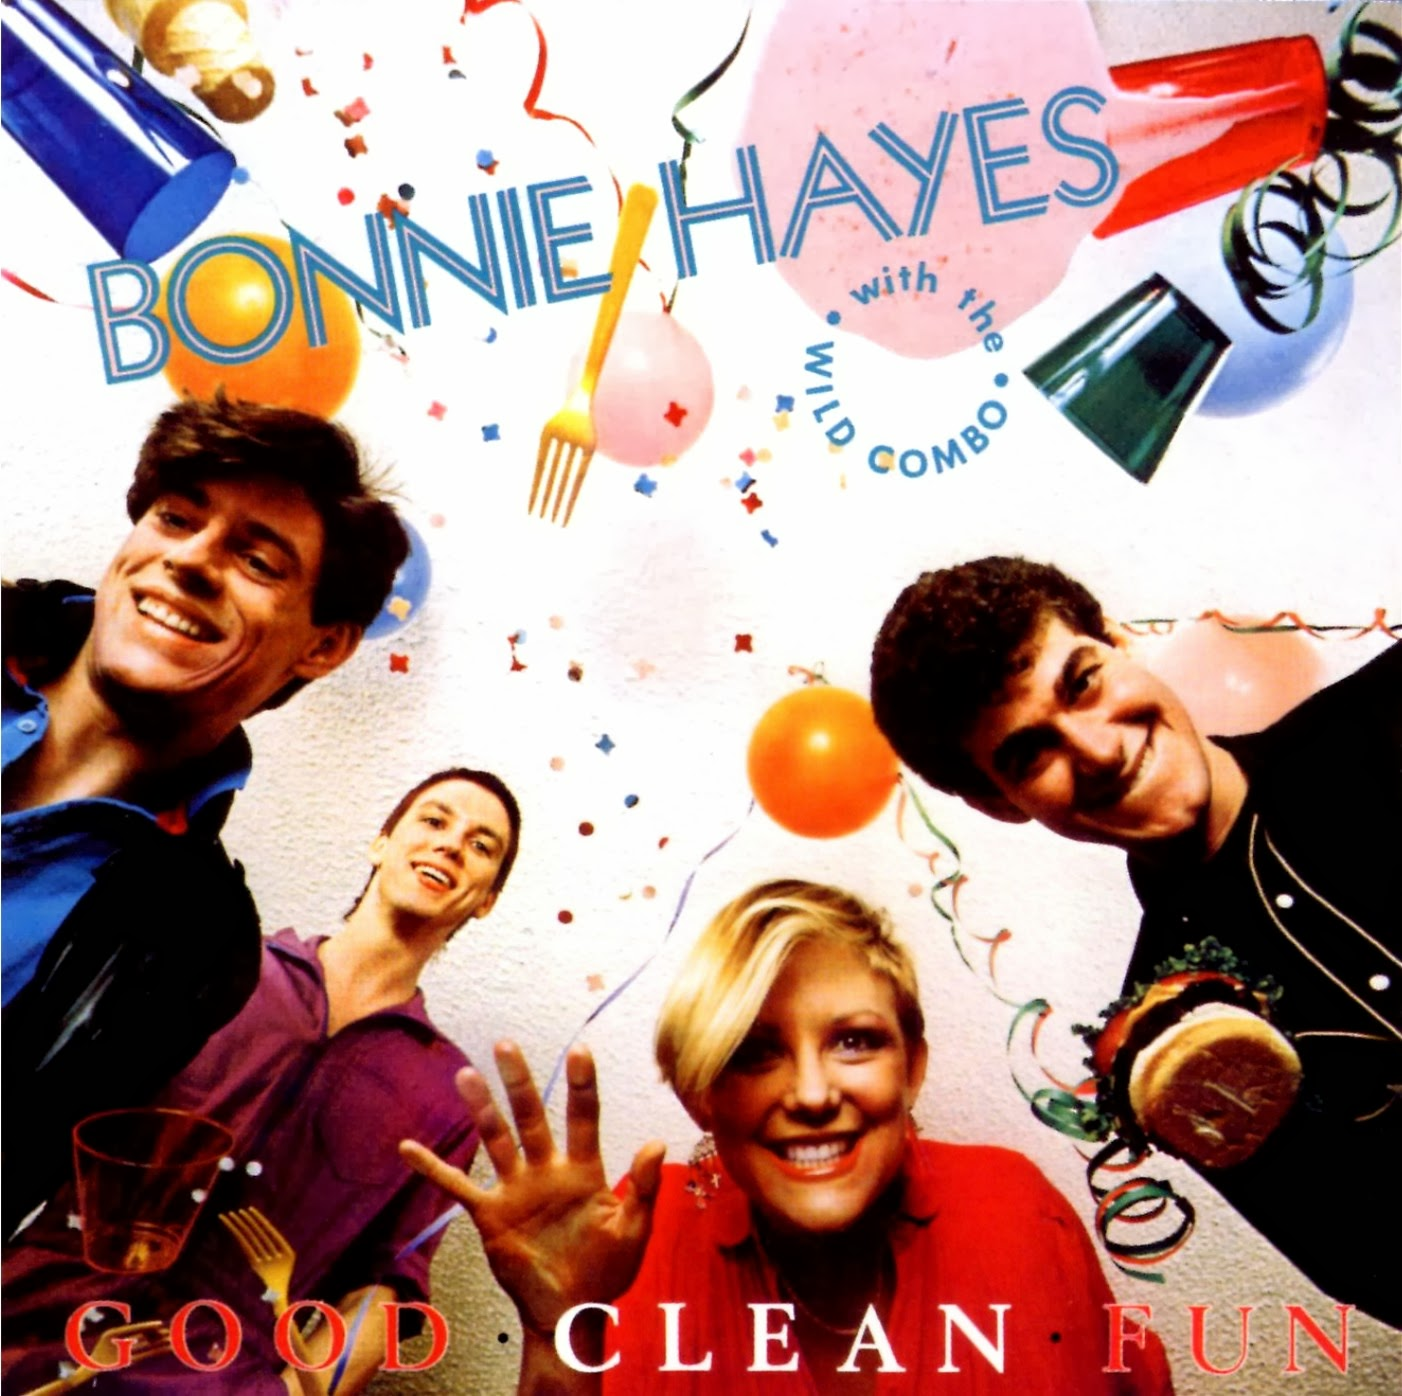 Clean Wholesome: Lansure's Music Paraphernalia: BONNIE HAYES